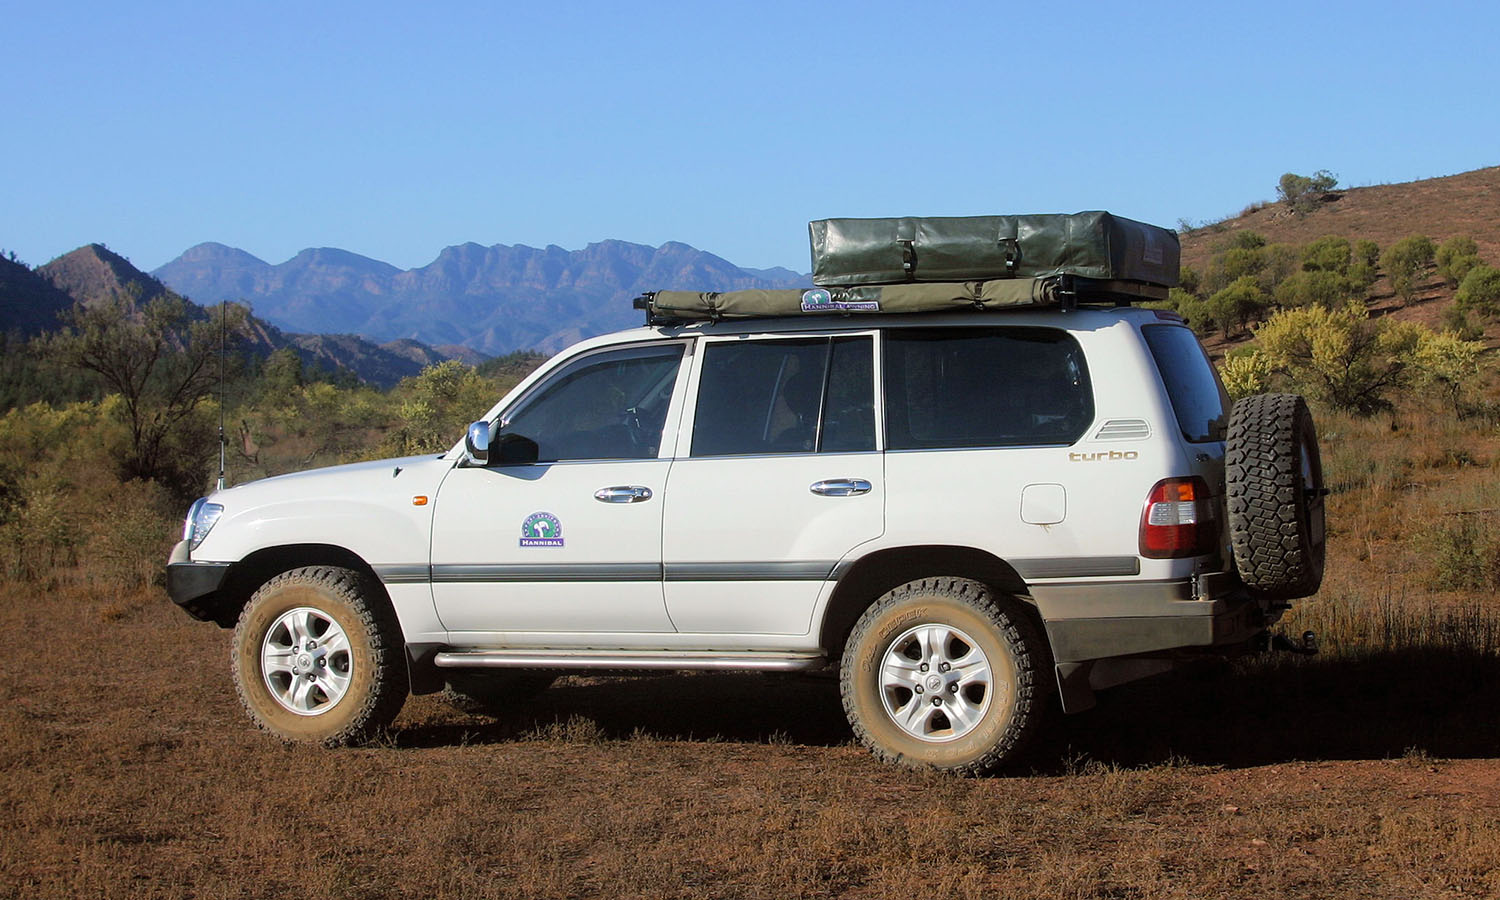 Hannibal Roof Racks for 100 Series Toyota Landcruiser : hannibal roof tent uk - memphite.com